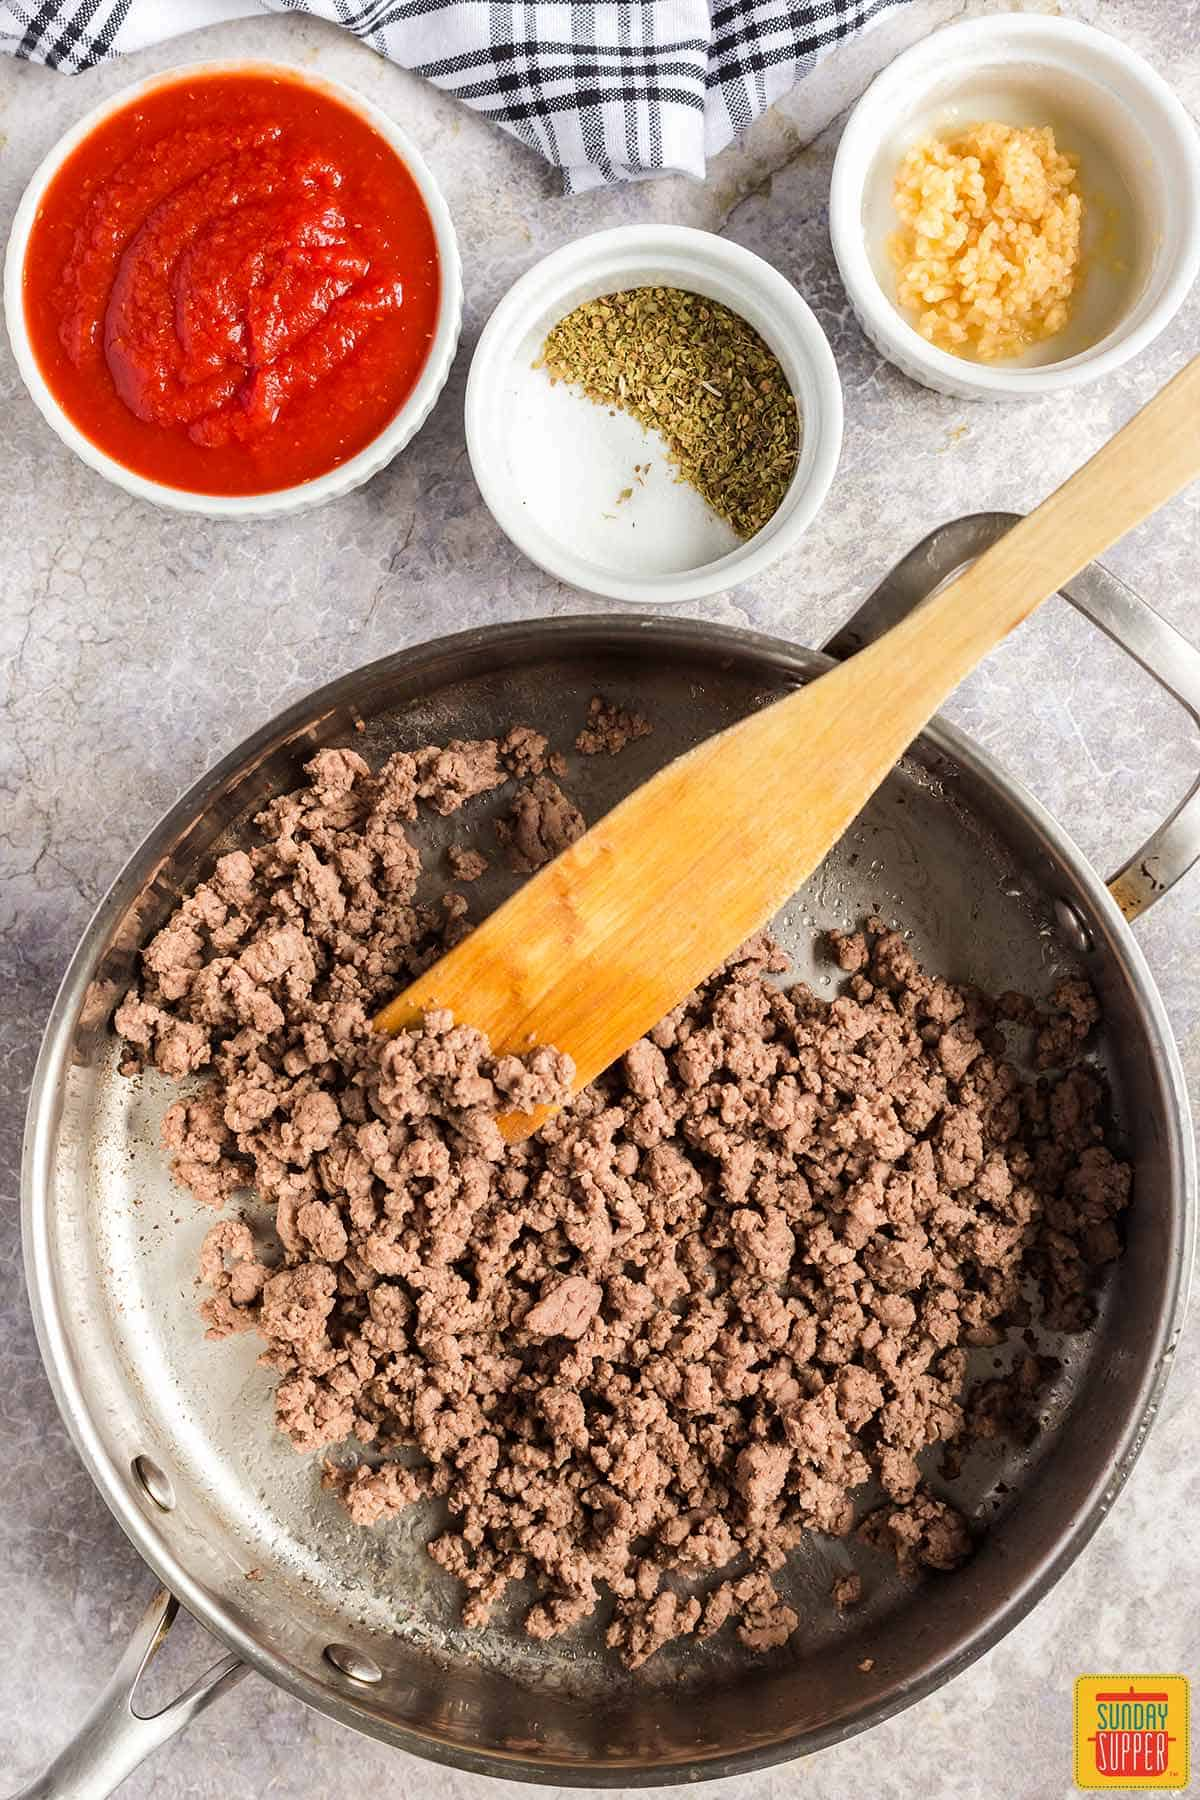 Cooking ground beef in a skillet